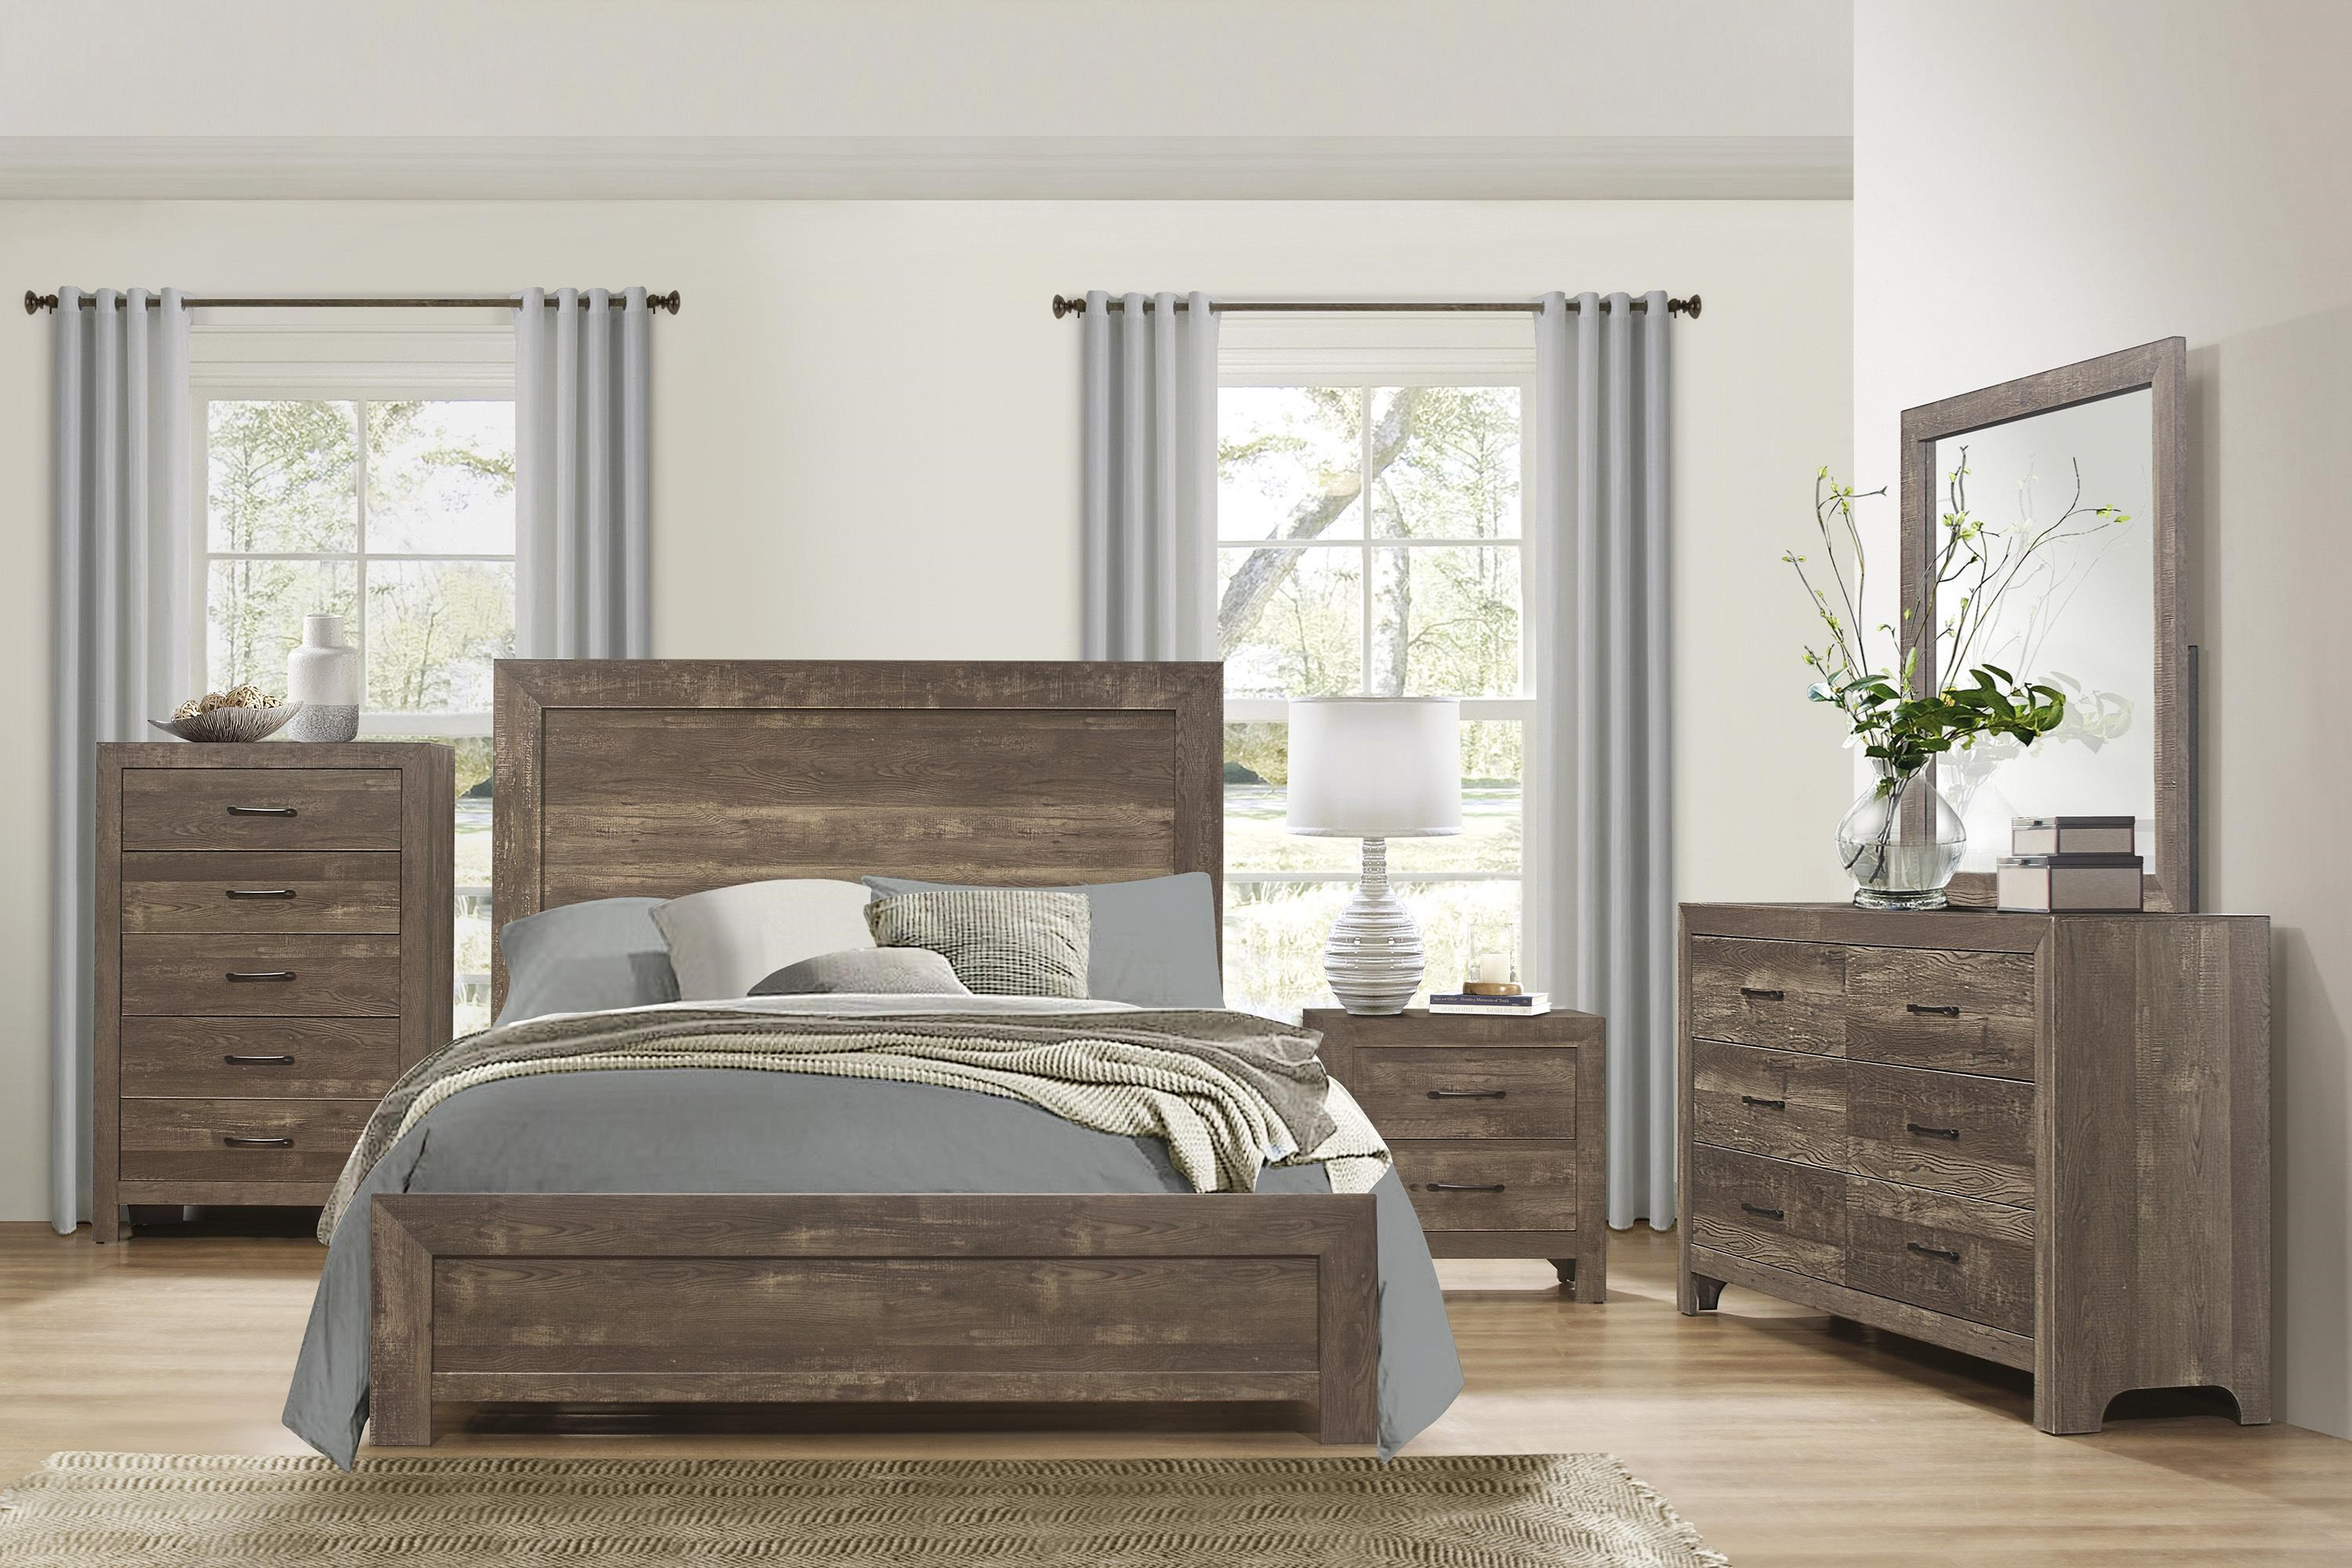 Corbin Twin Bedroom Group by Homelegance at Beck's Furniture